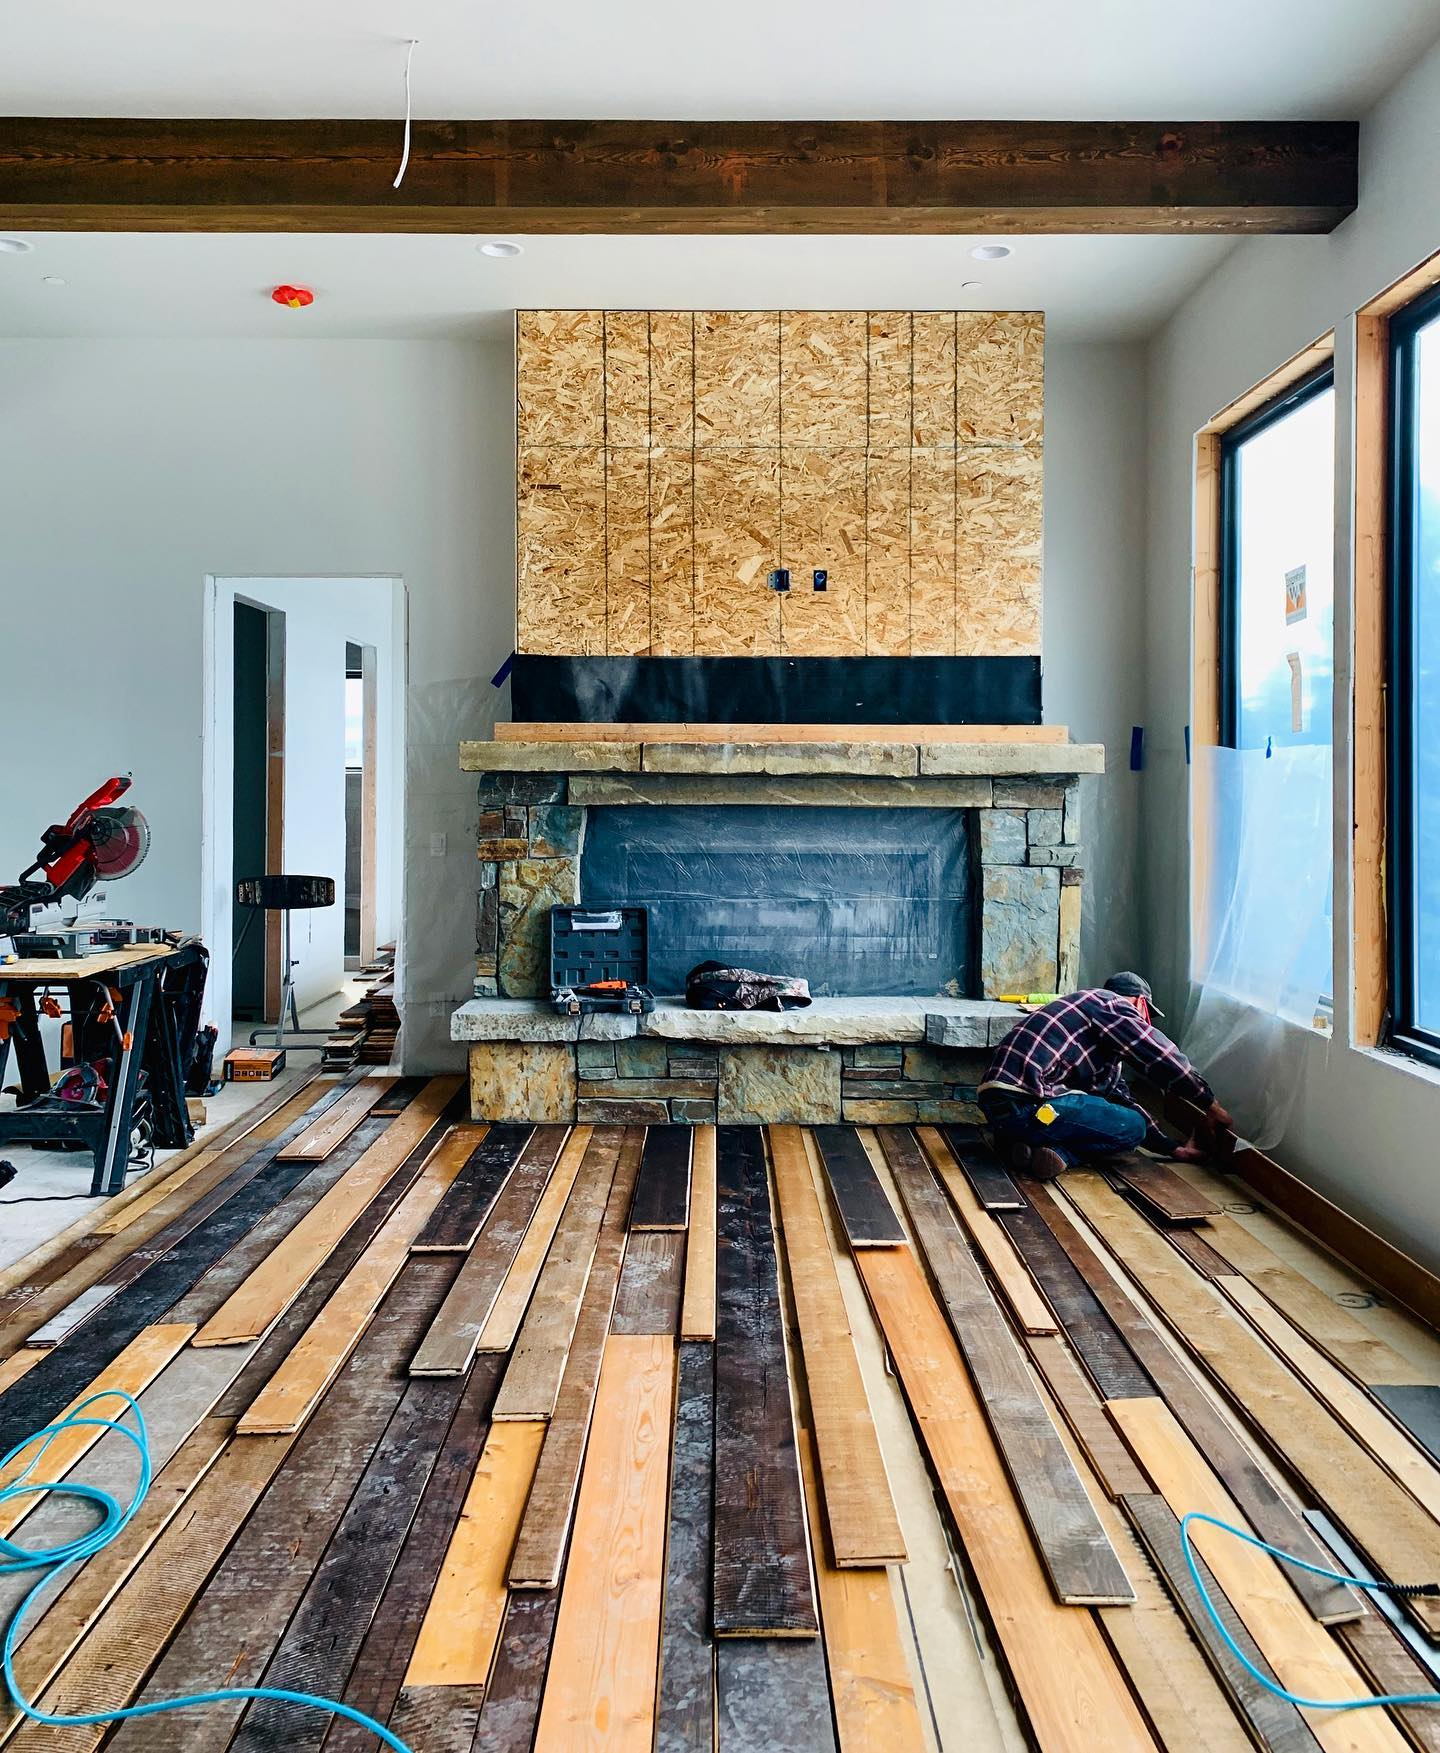 Flooring going in at the Timbers house today (good work @thileman1955 ️) it looks awesome. whitefish custom home builder